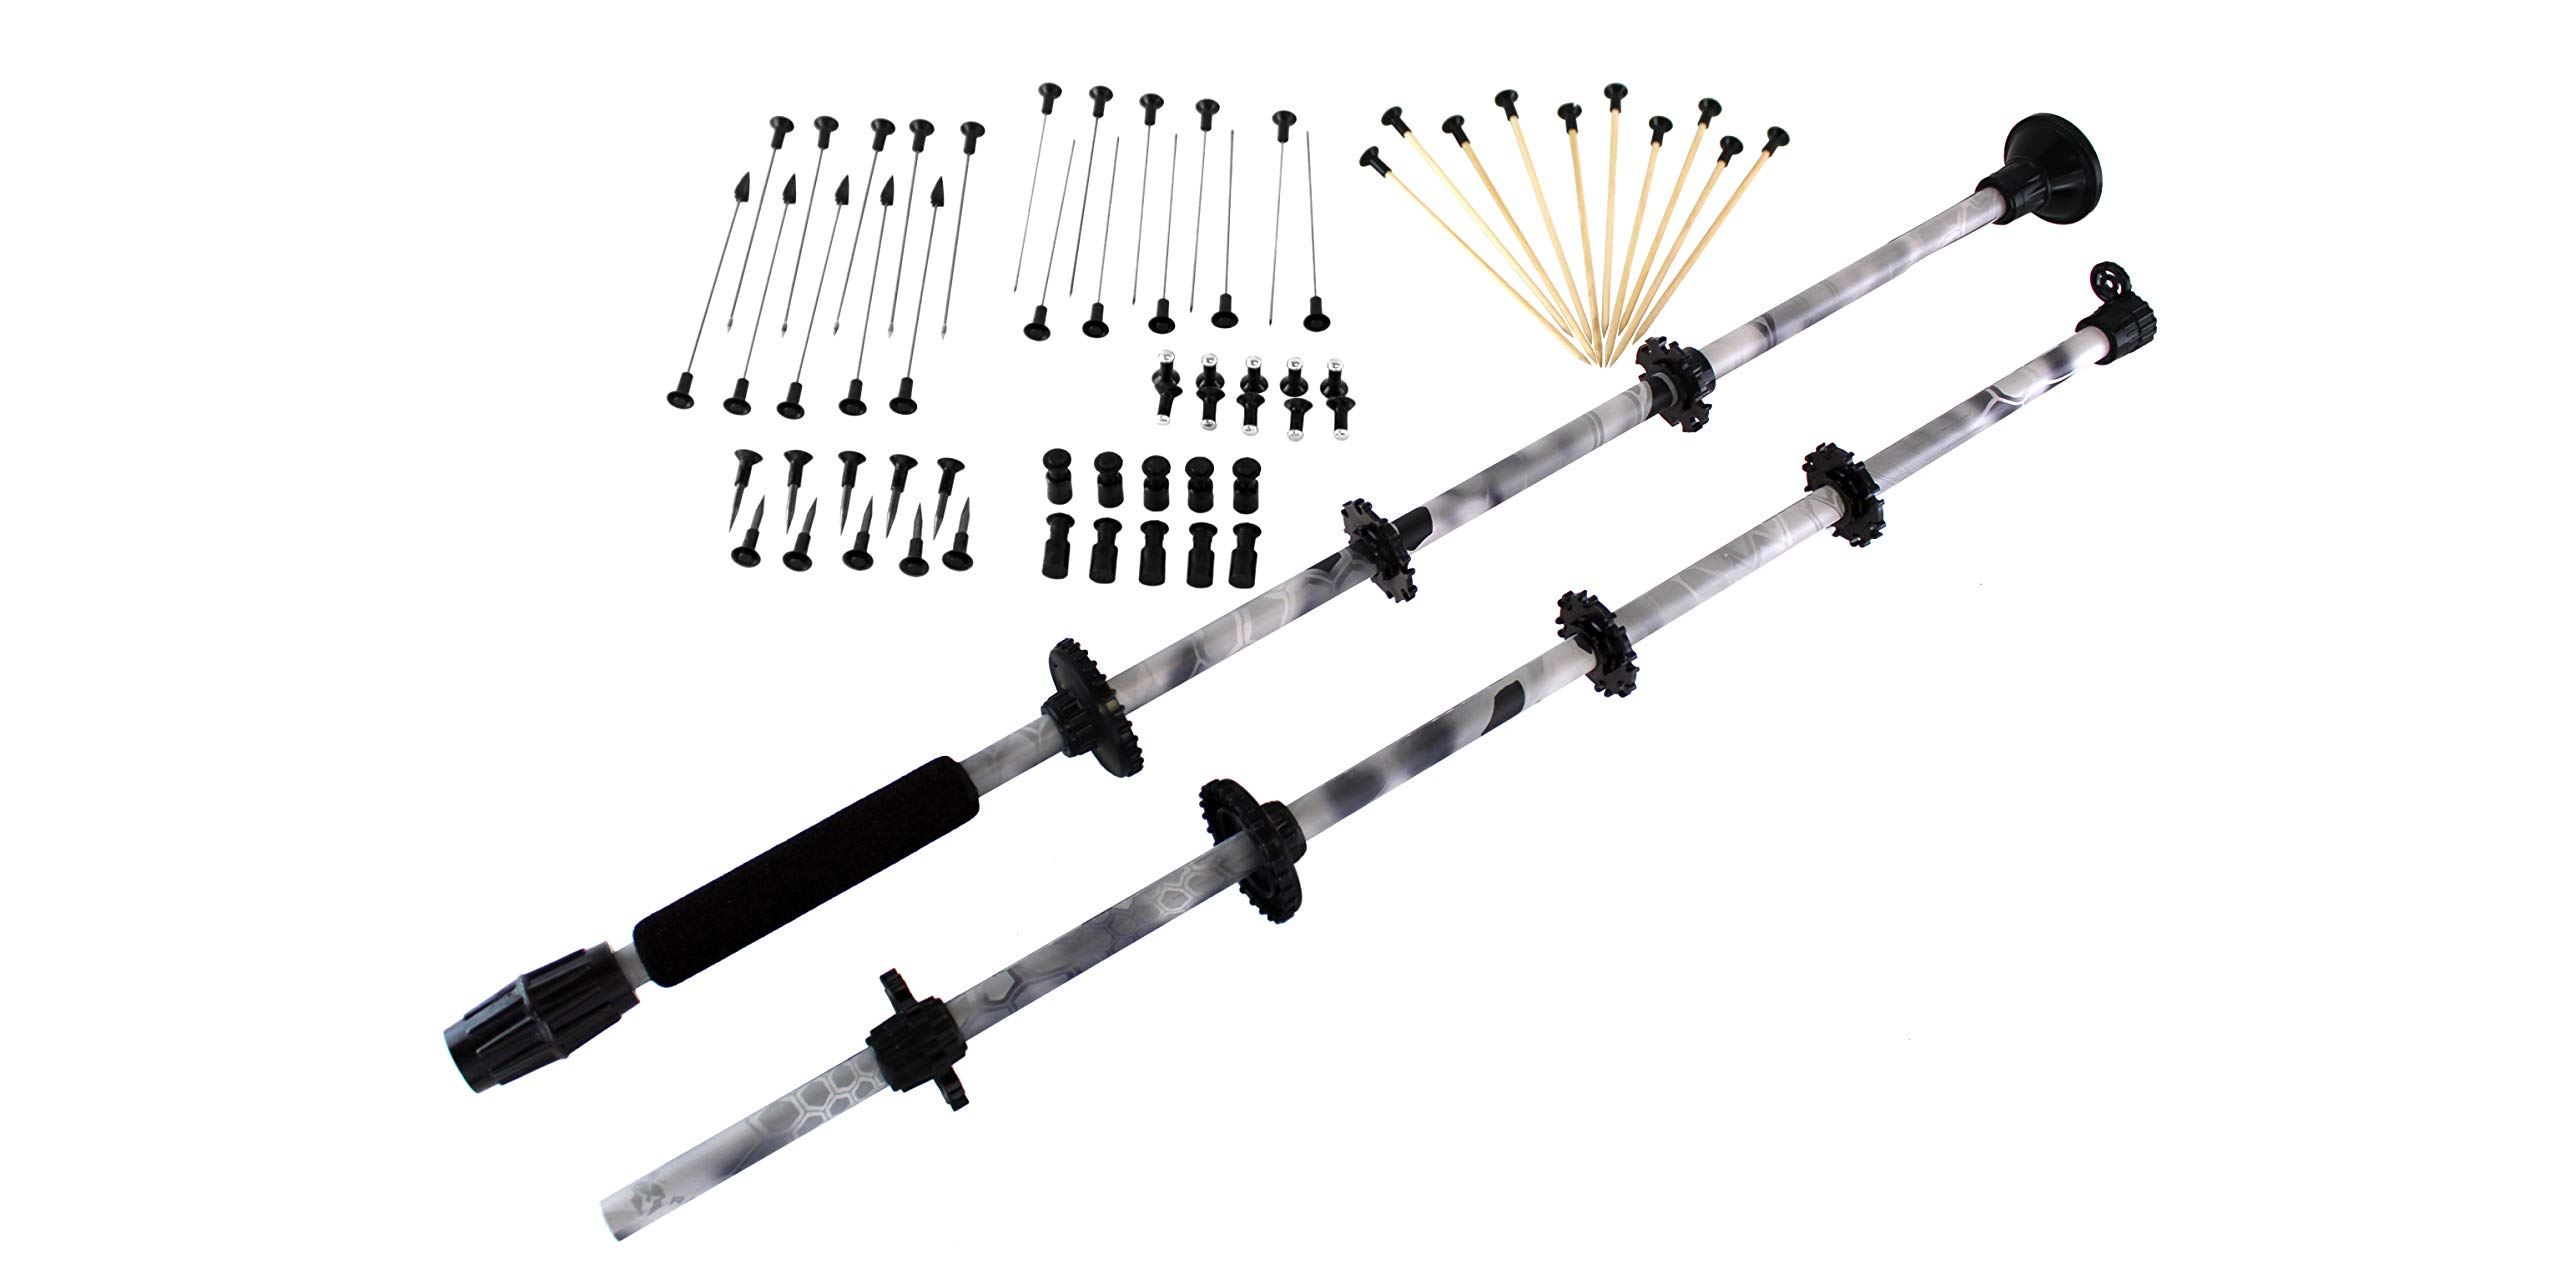 BLUEGOBY Blowgun 48'' .40 Cal Kryptek Raid Blow Dart Gun Made in USA with Tactical Peep Sight, 10 Target Darts, 10 Bamboo, 5 Spear, 5 Broadhead, 10 Thumpers, 10 Stunners, 10 Spike Darts by BLUEGOBY